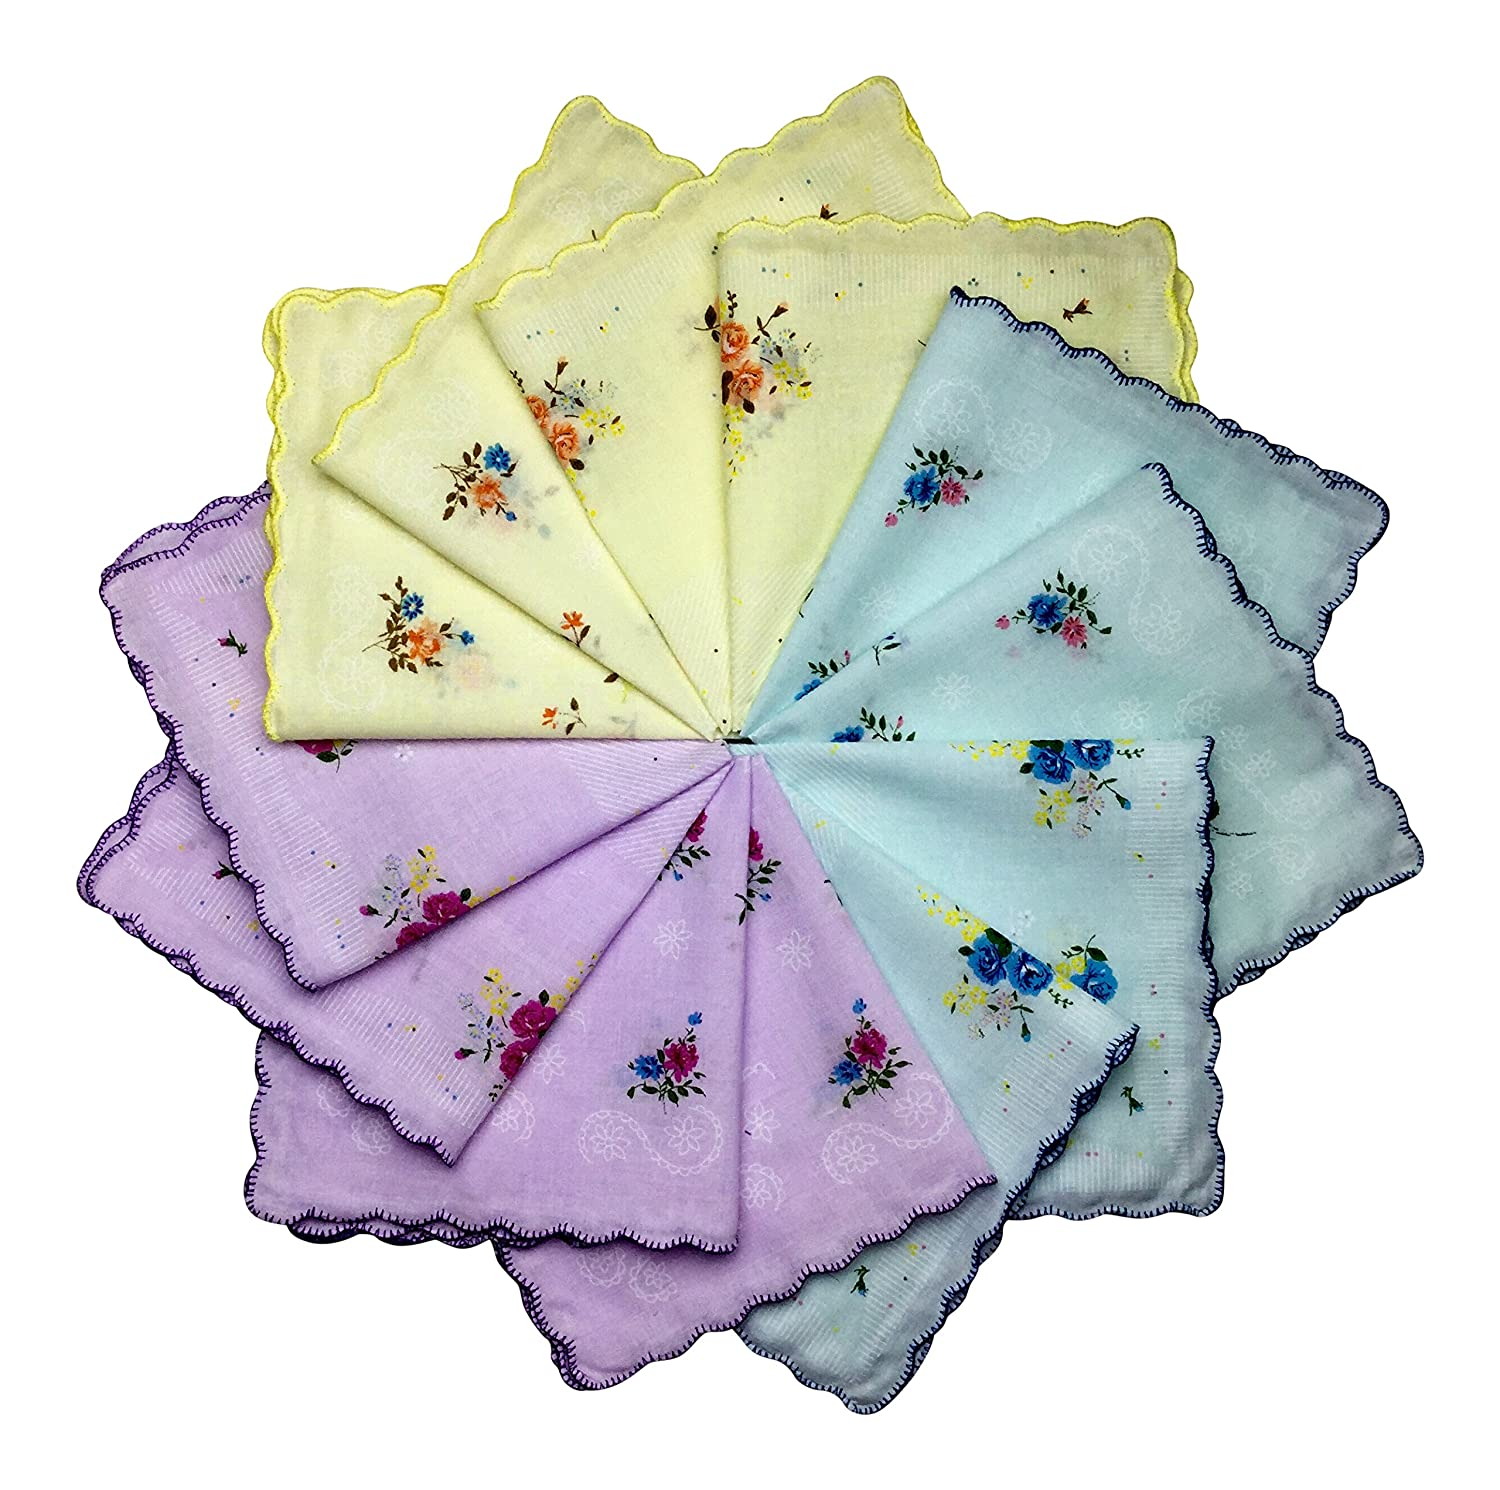 Q.T. Bamboo Women's Cotton Handkerchiefs 12 Pack Vintage Inspired Floral Design 4 Yellow 4 Pink))